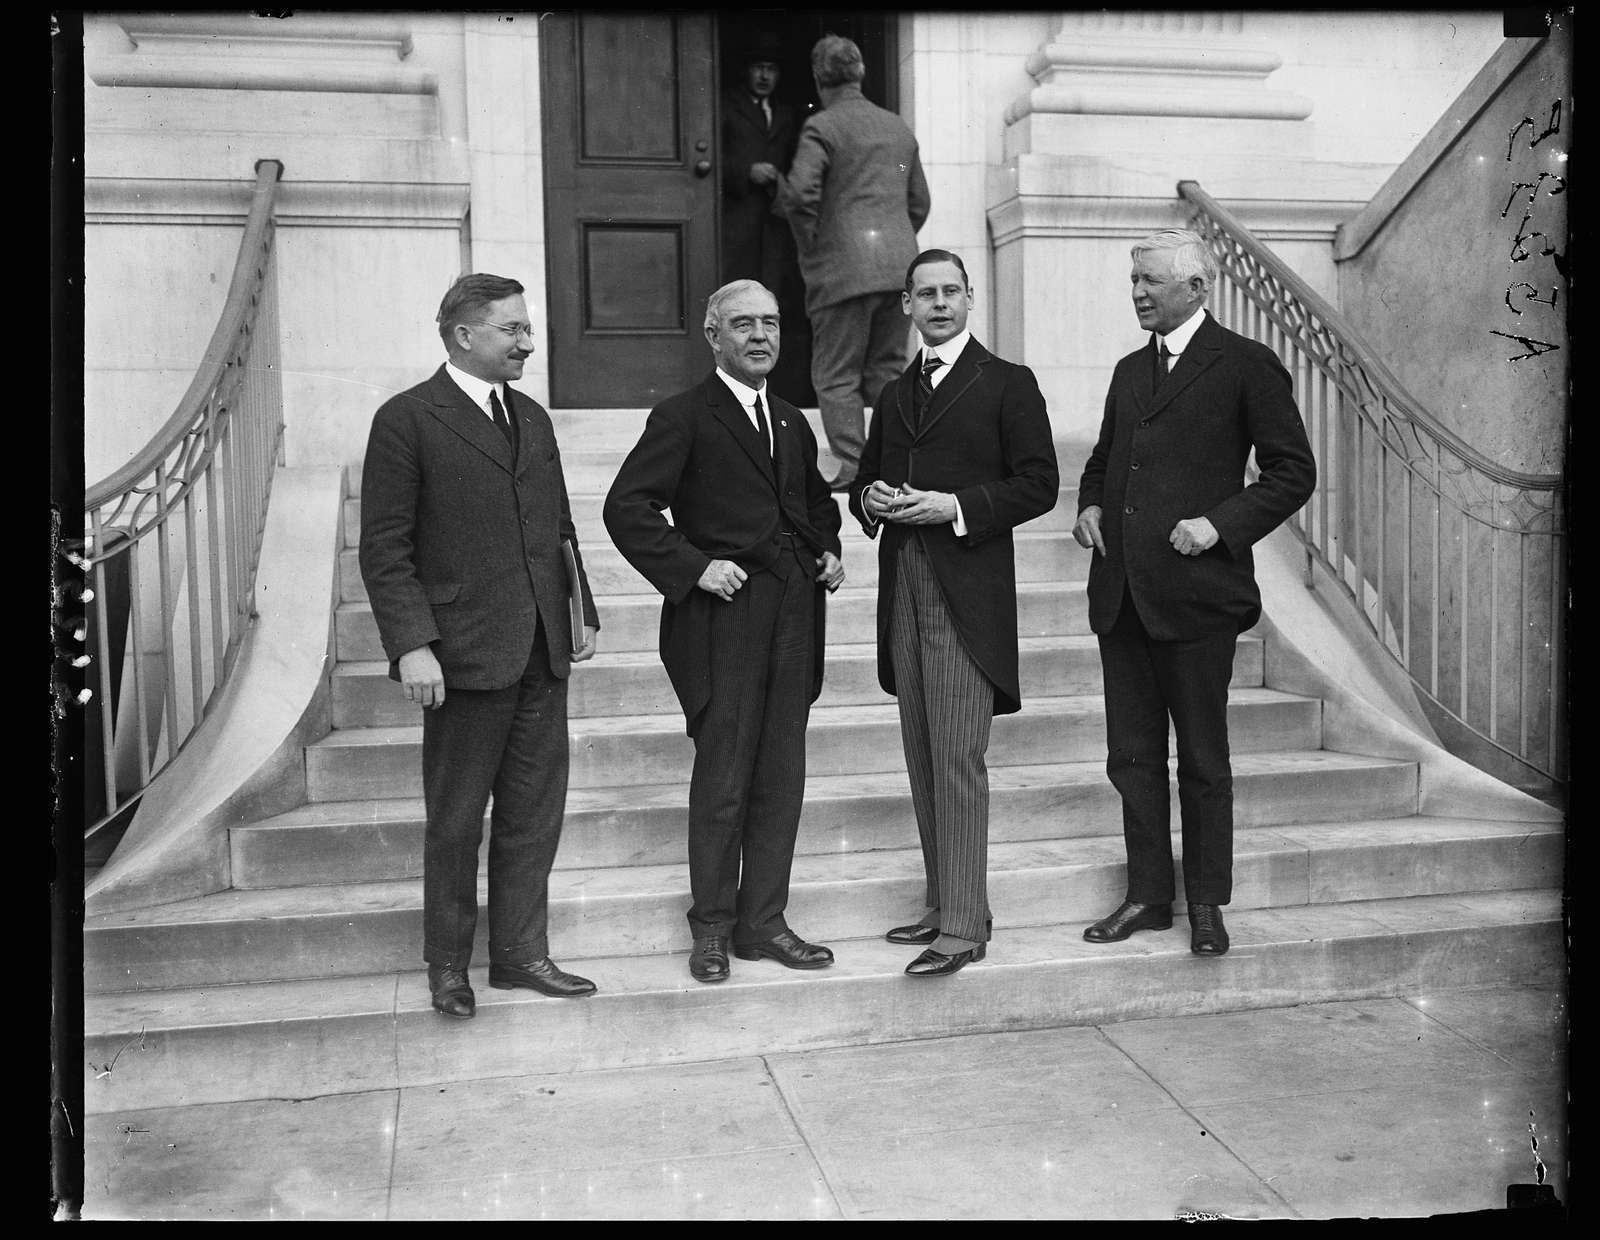 Amer. Red Cross group. Left to right: James L. Fieser, Judge John B. Payne, Edgar Prochwile, and Col. Bickwell